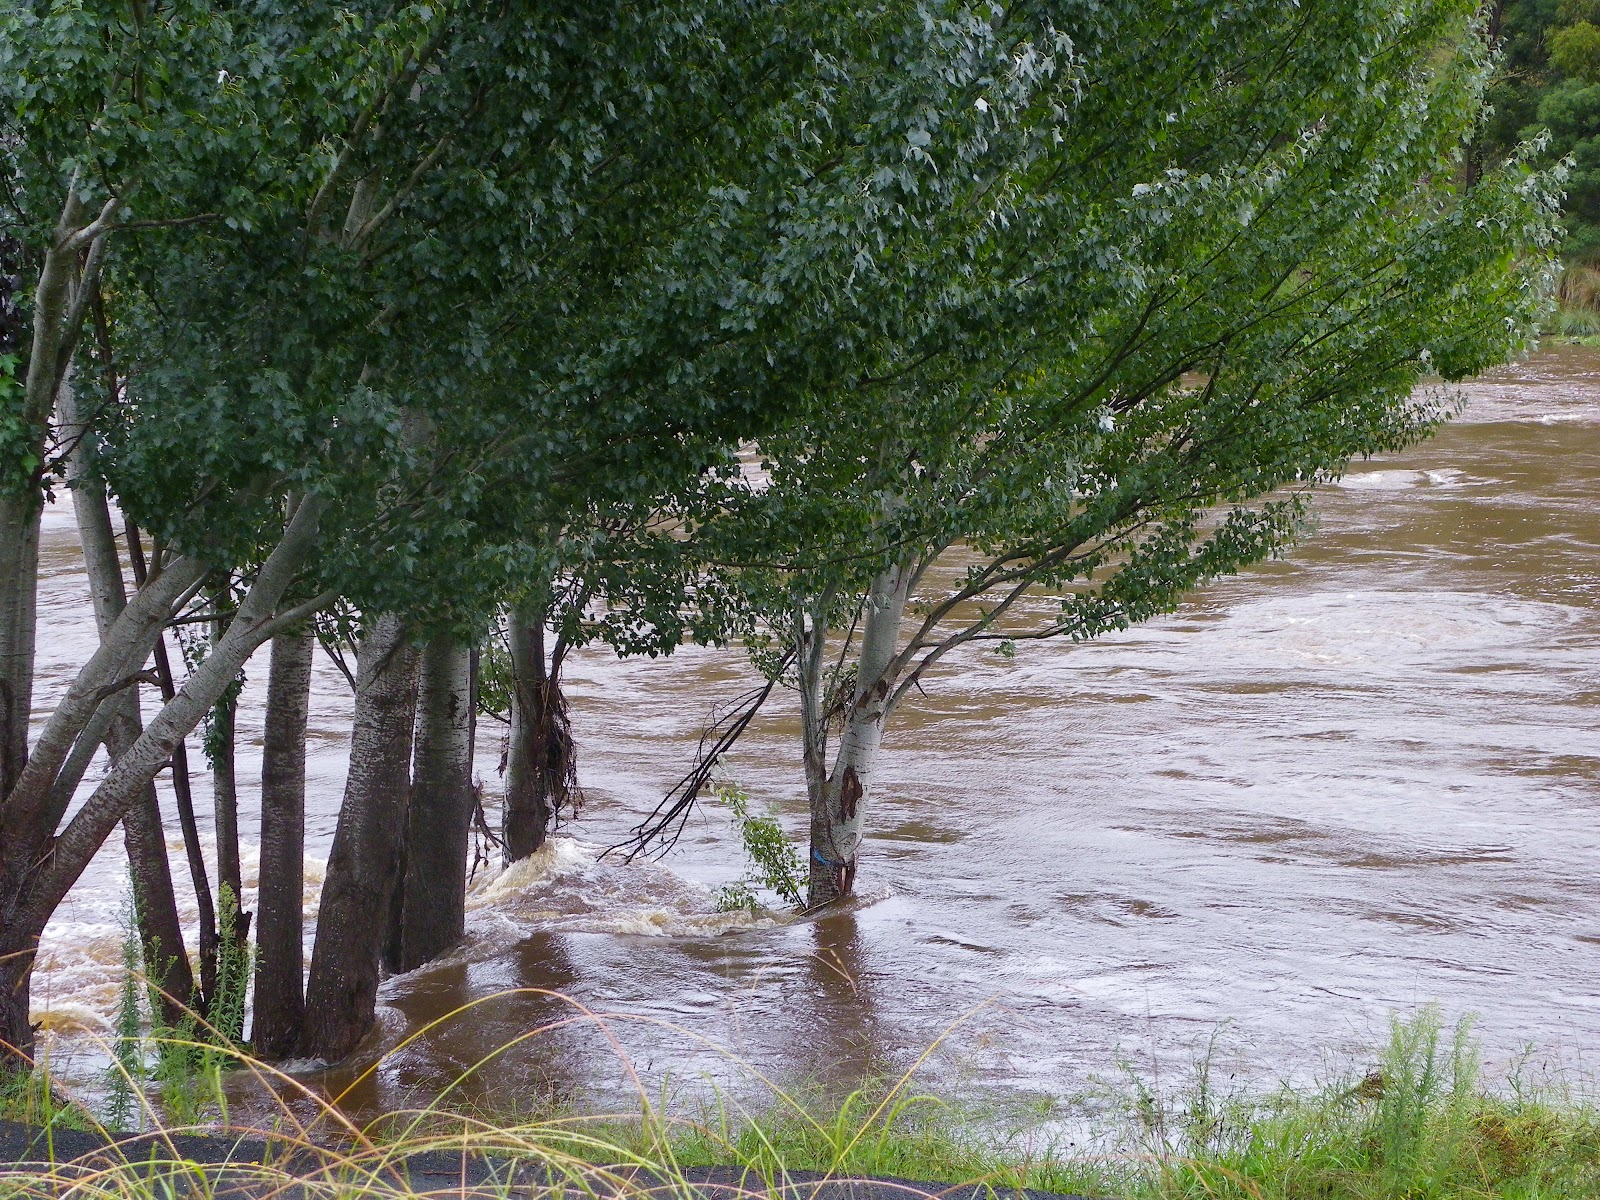 queanbeyan river - photo#33